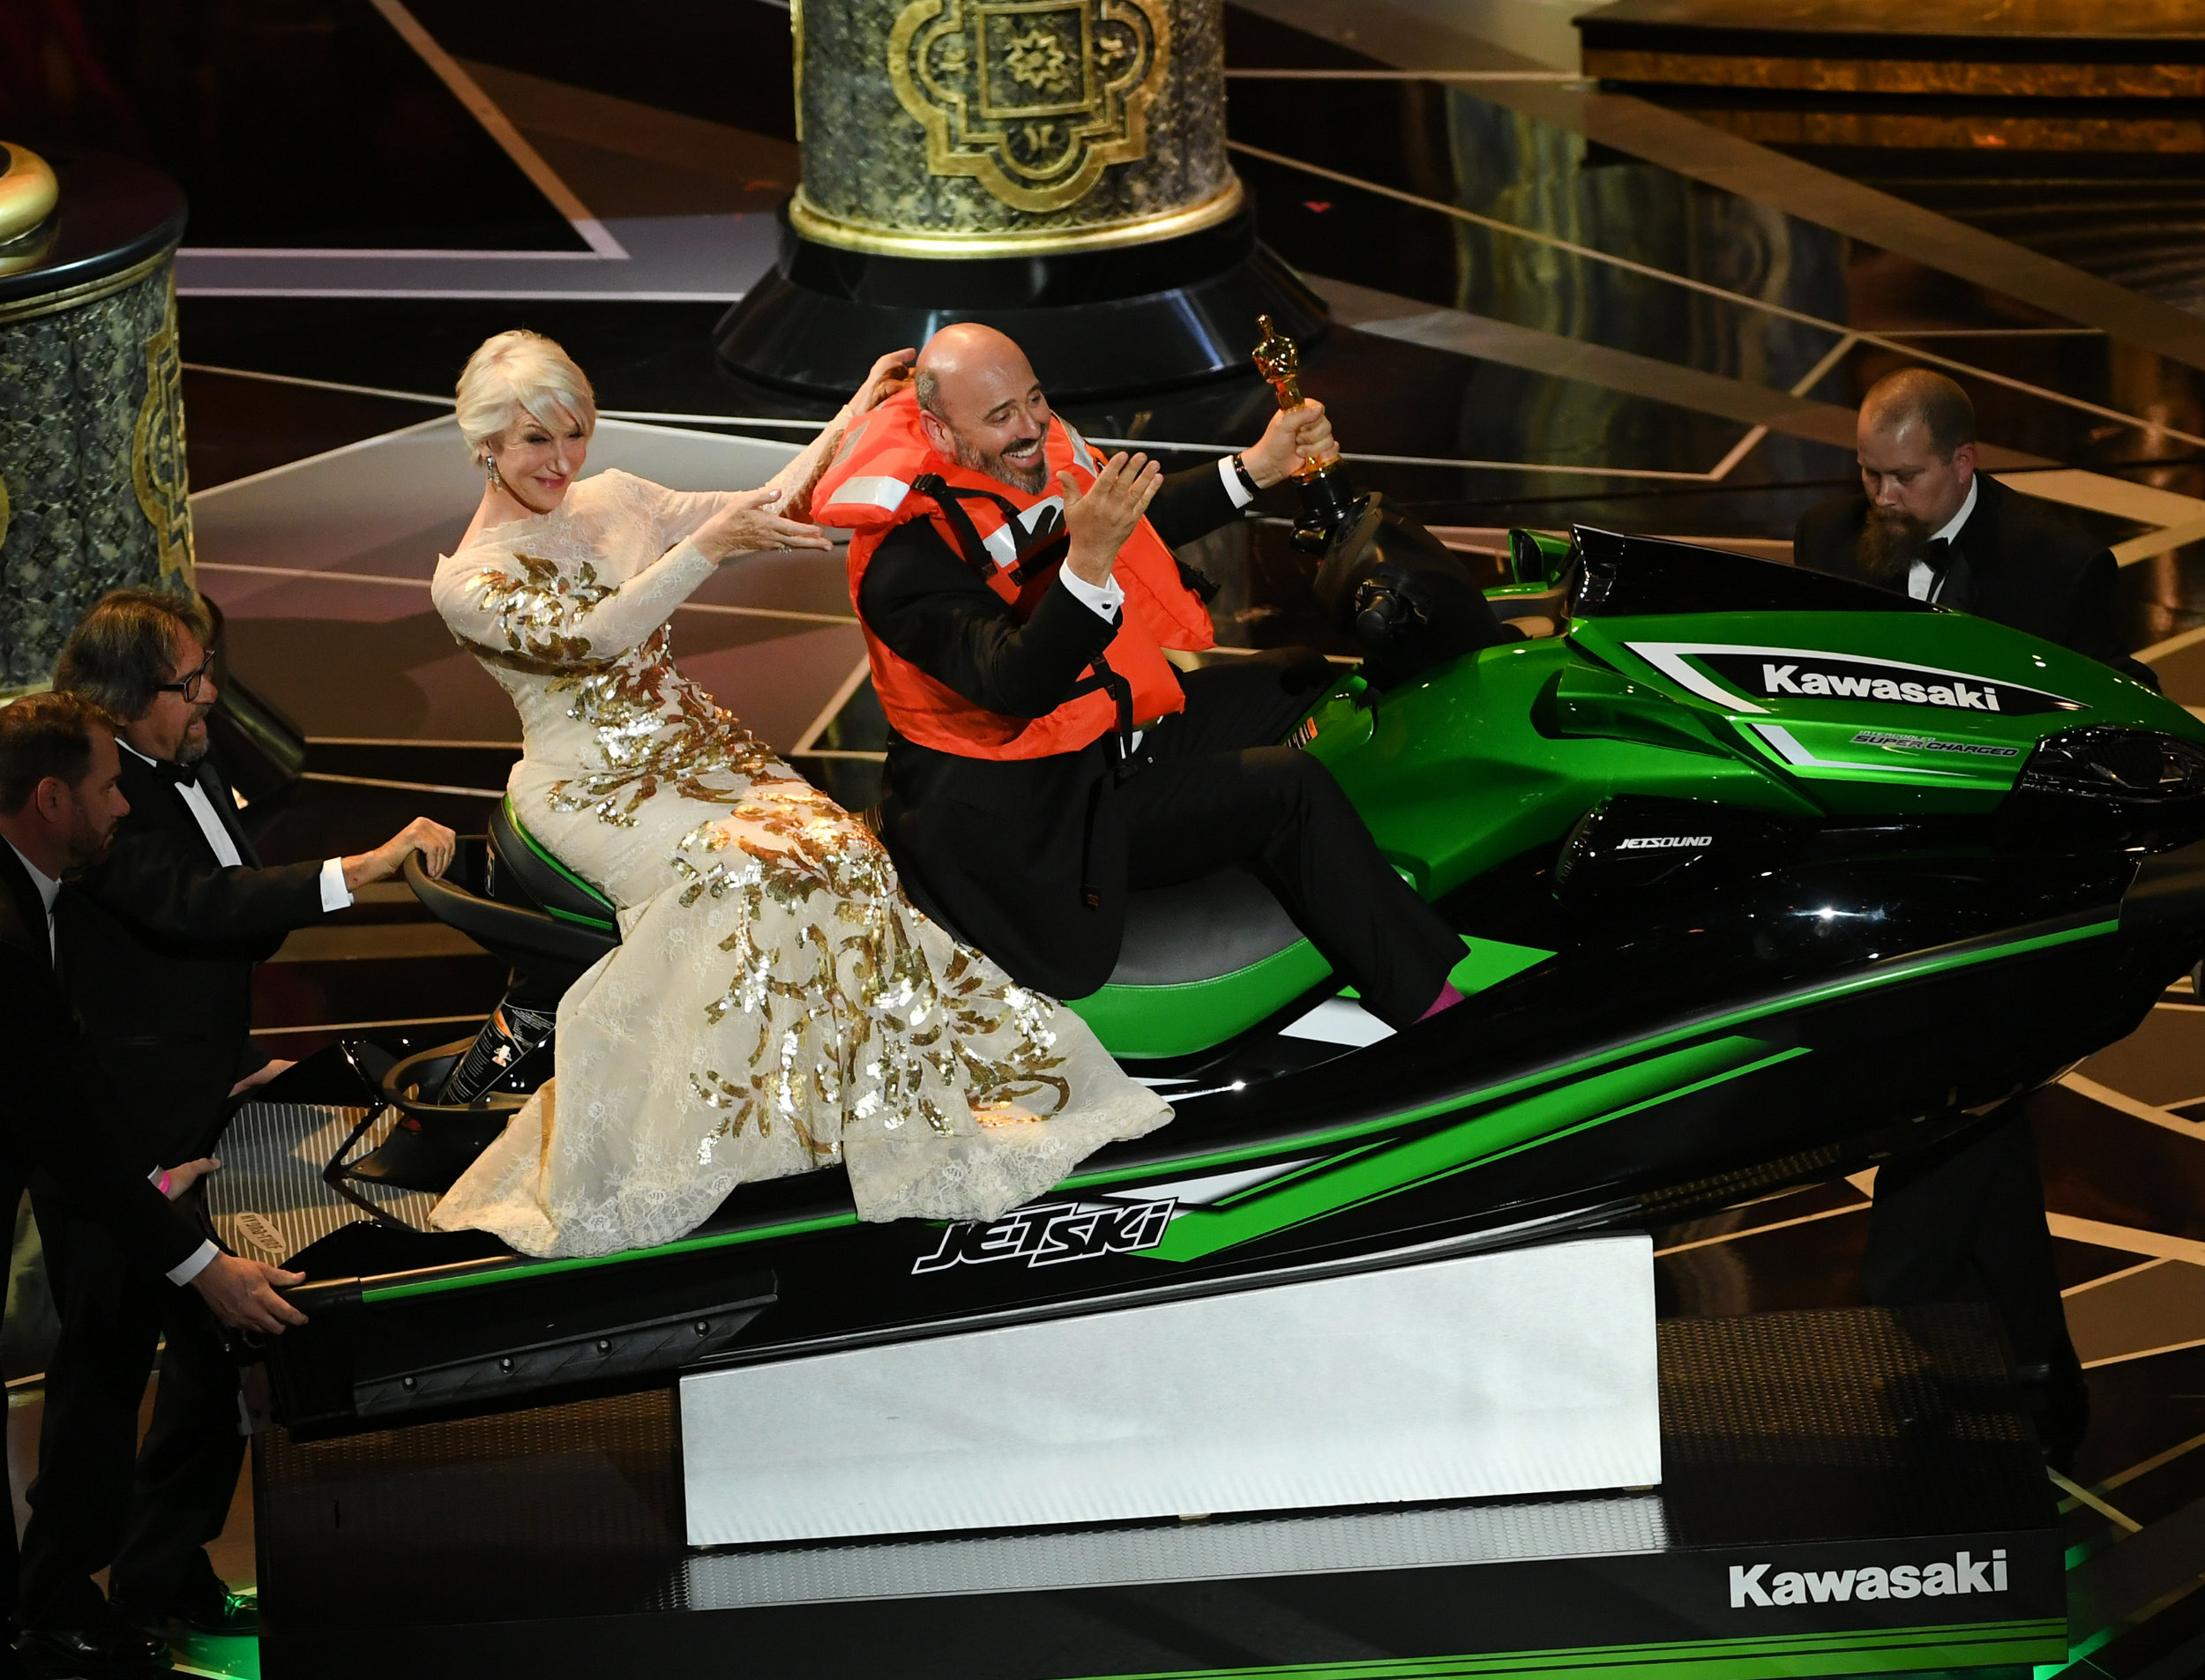 who-won-jet-ski-at-oscars.jpg